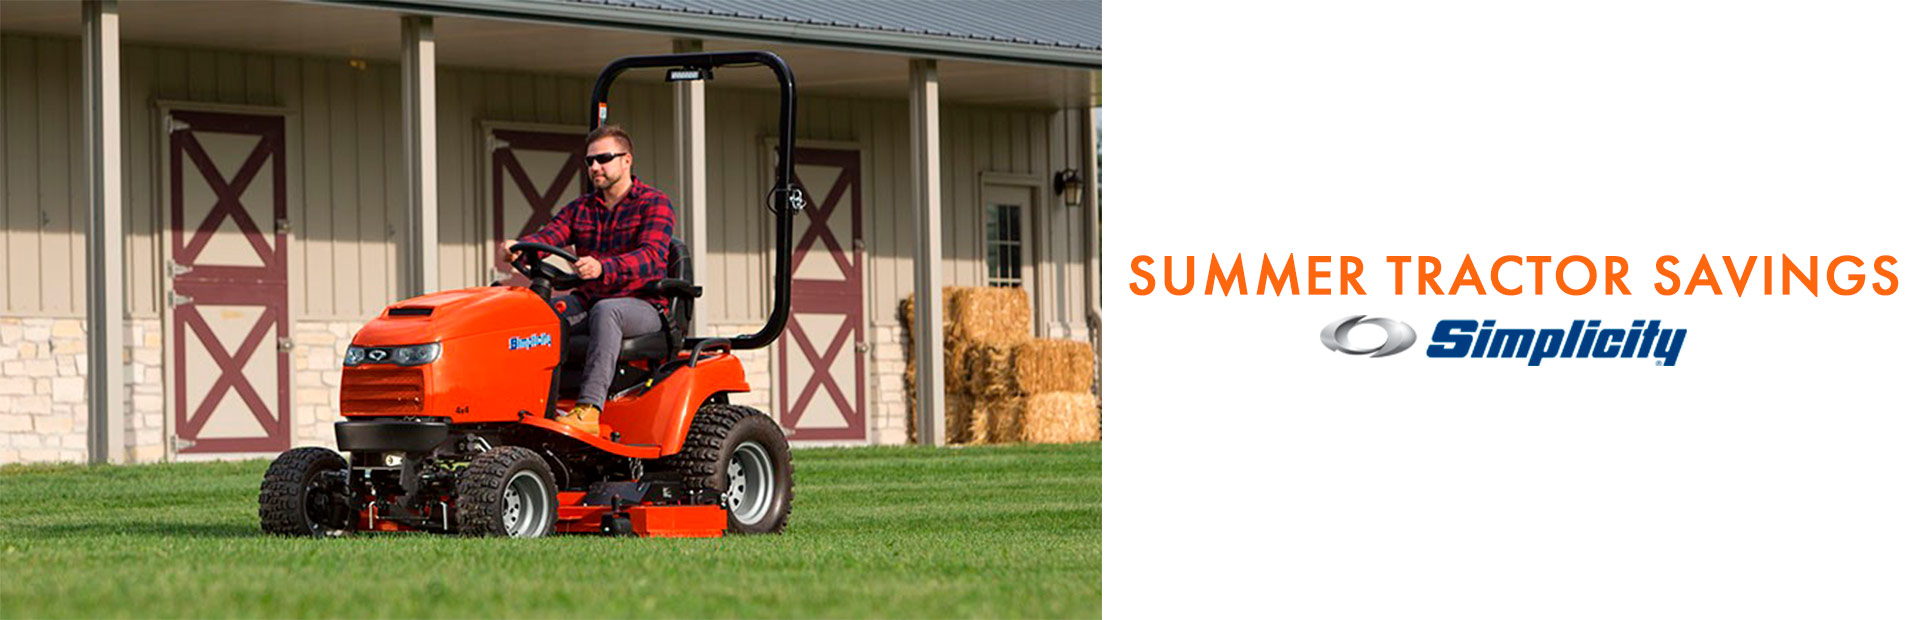 Simplicity: SUMMER TRACTOR SAVINGS